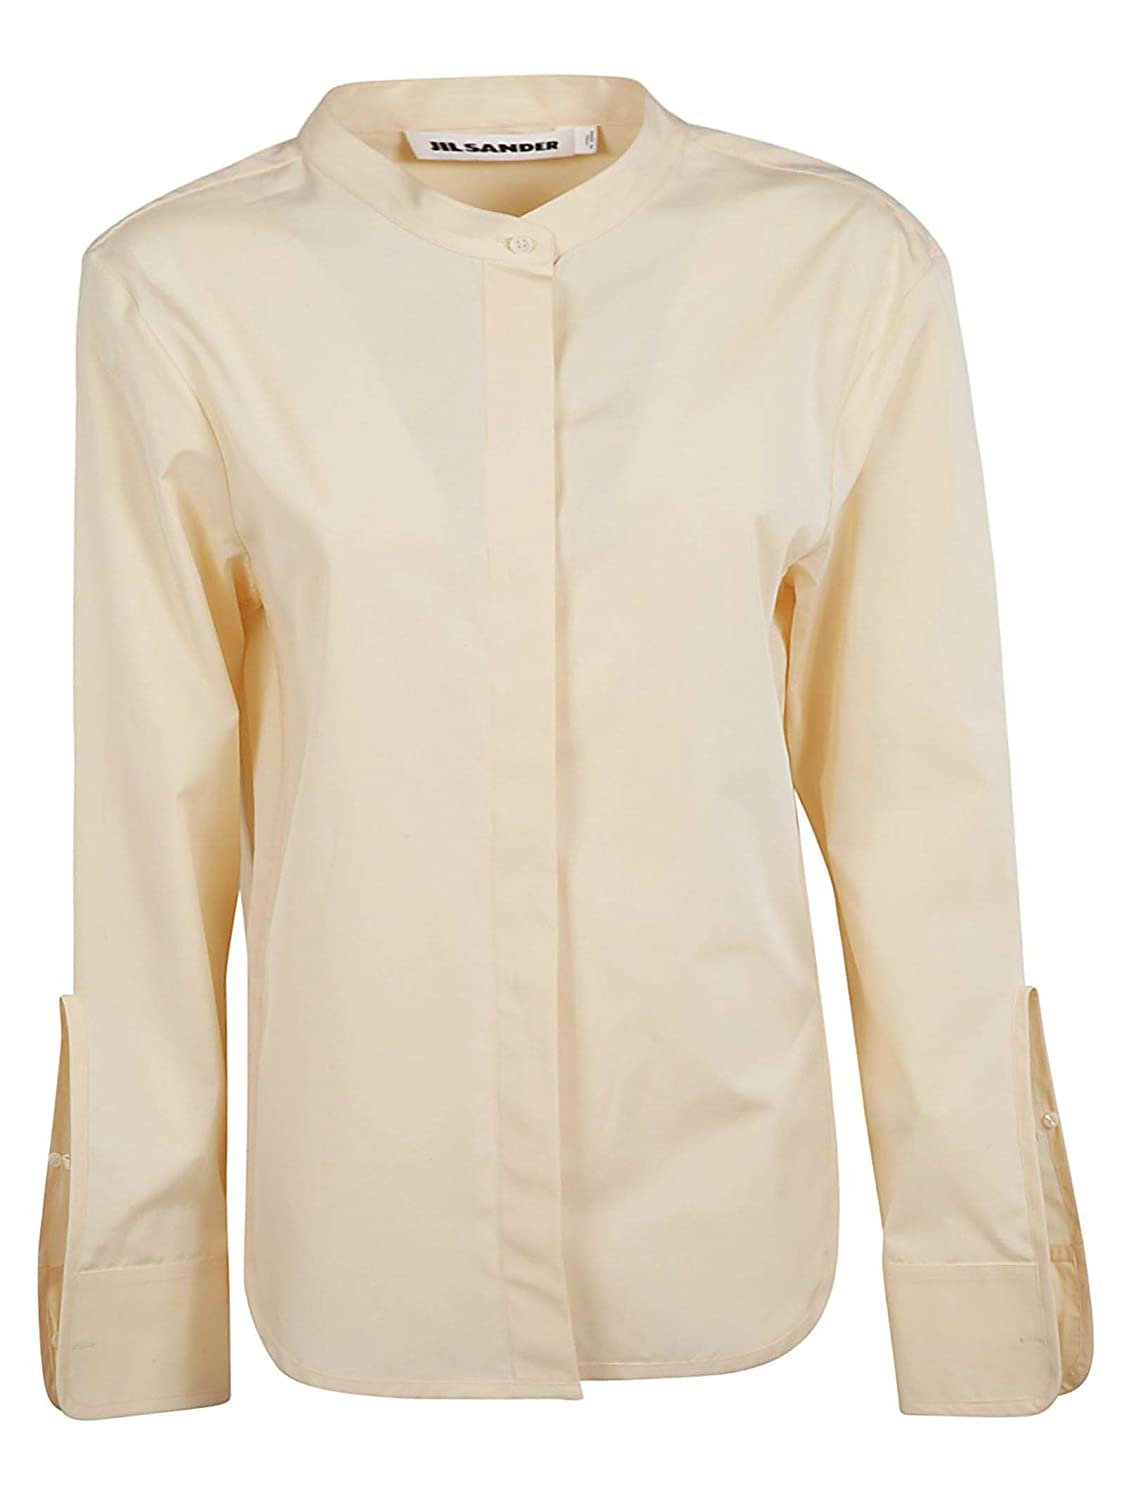 Jil Sander Women's JSPO601205WO244300107 Beige Cotton Shirt